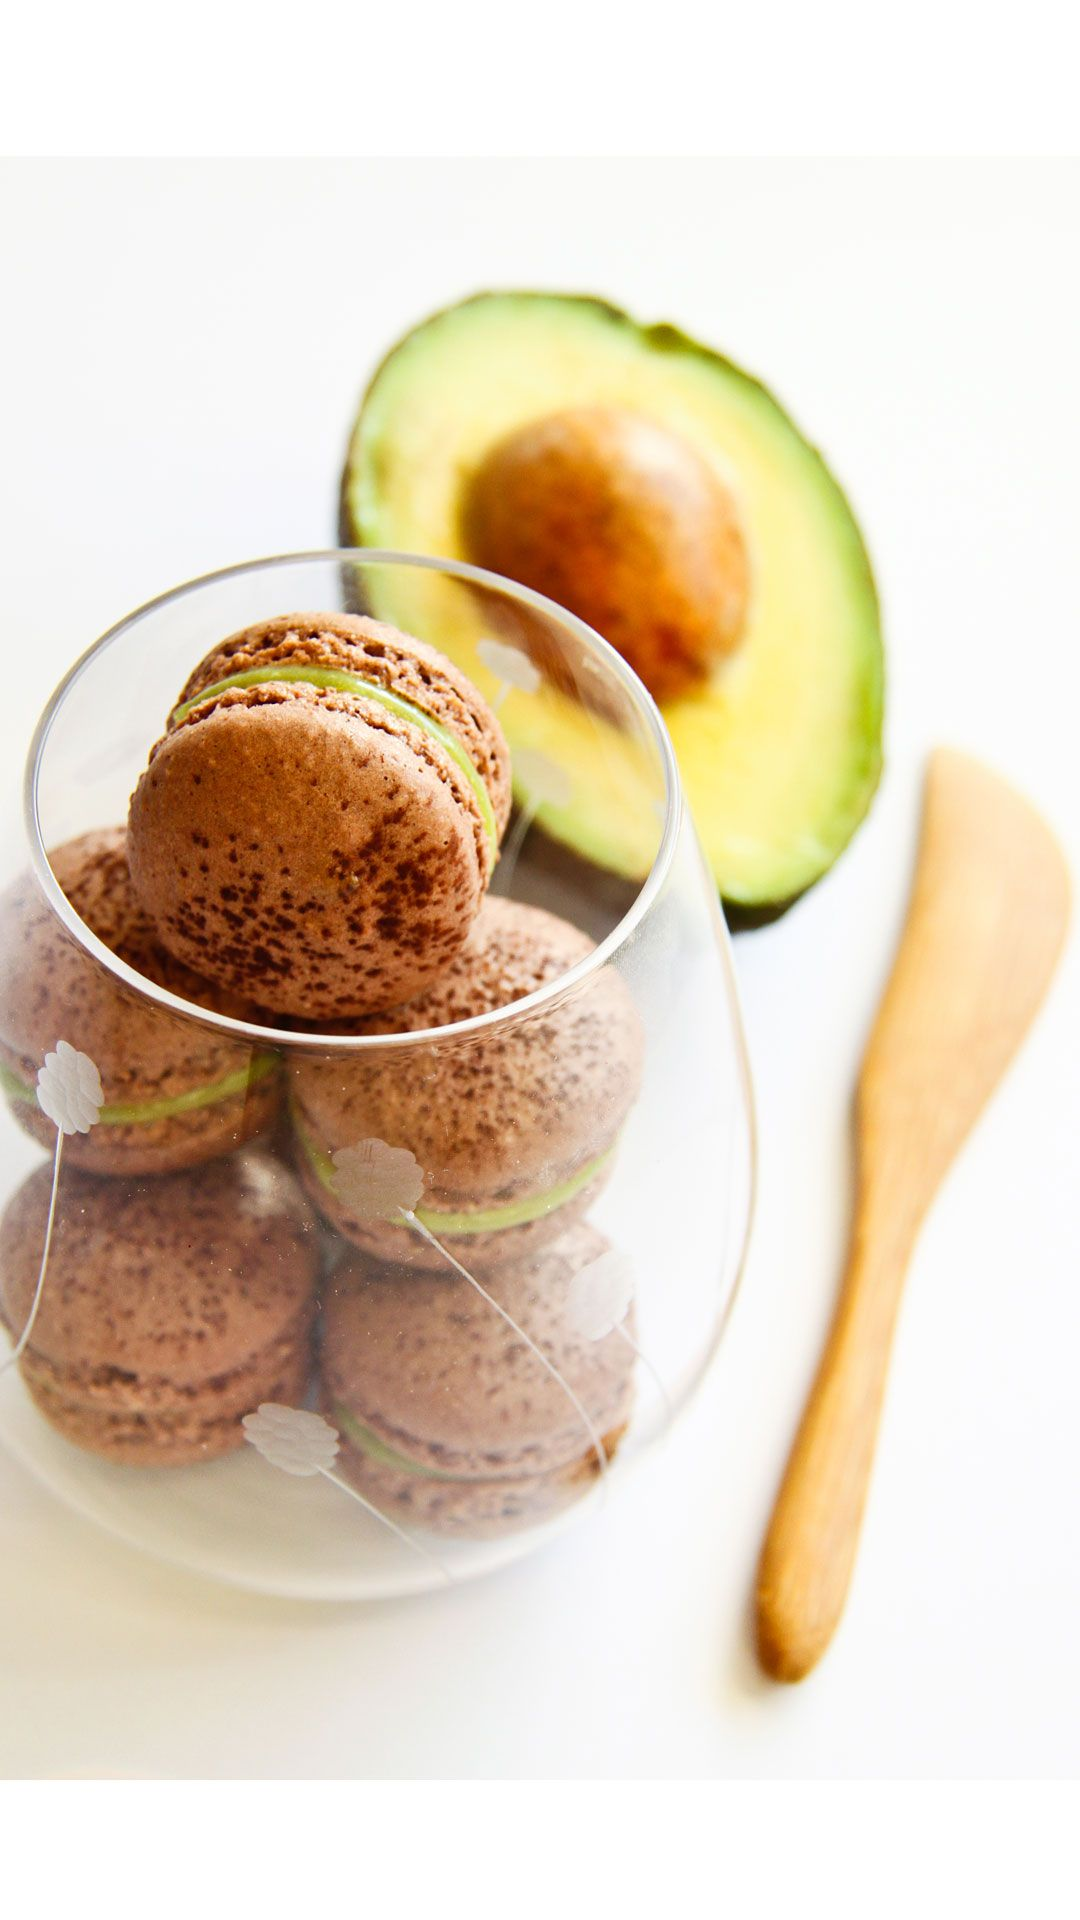 The popular French sweets have finally become a thing on our shores, so it's time to make 'em even better. The chocolate-flavored meringue and avocado filling in these macaroons complement each other perfectly. Get the recipe at raspberricupcakes.com.   - Redbook.com